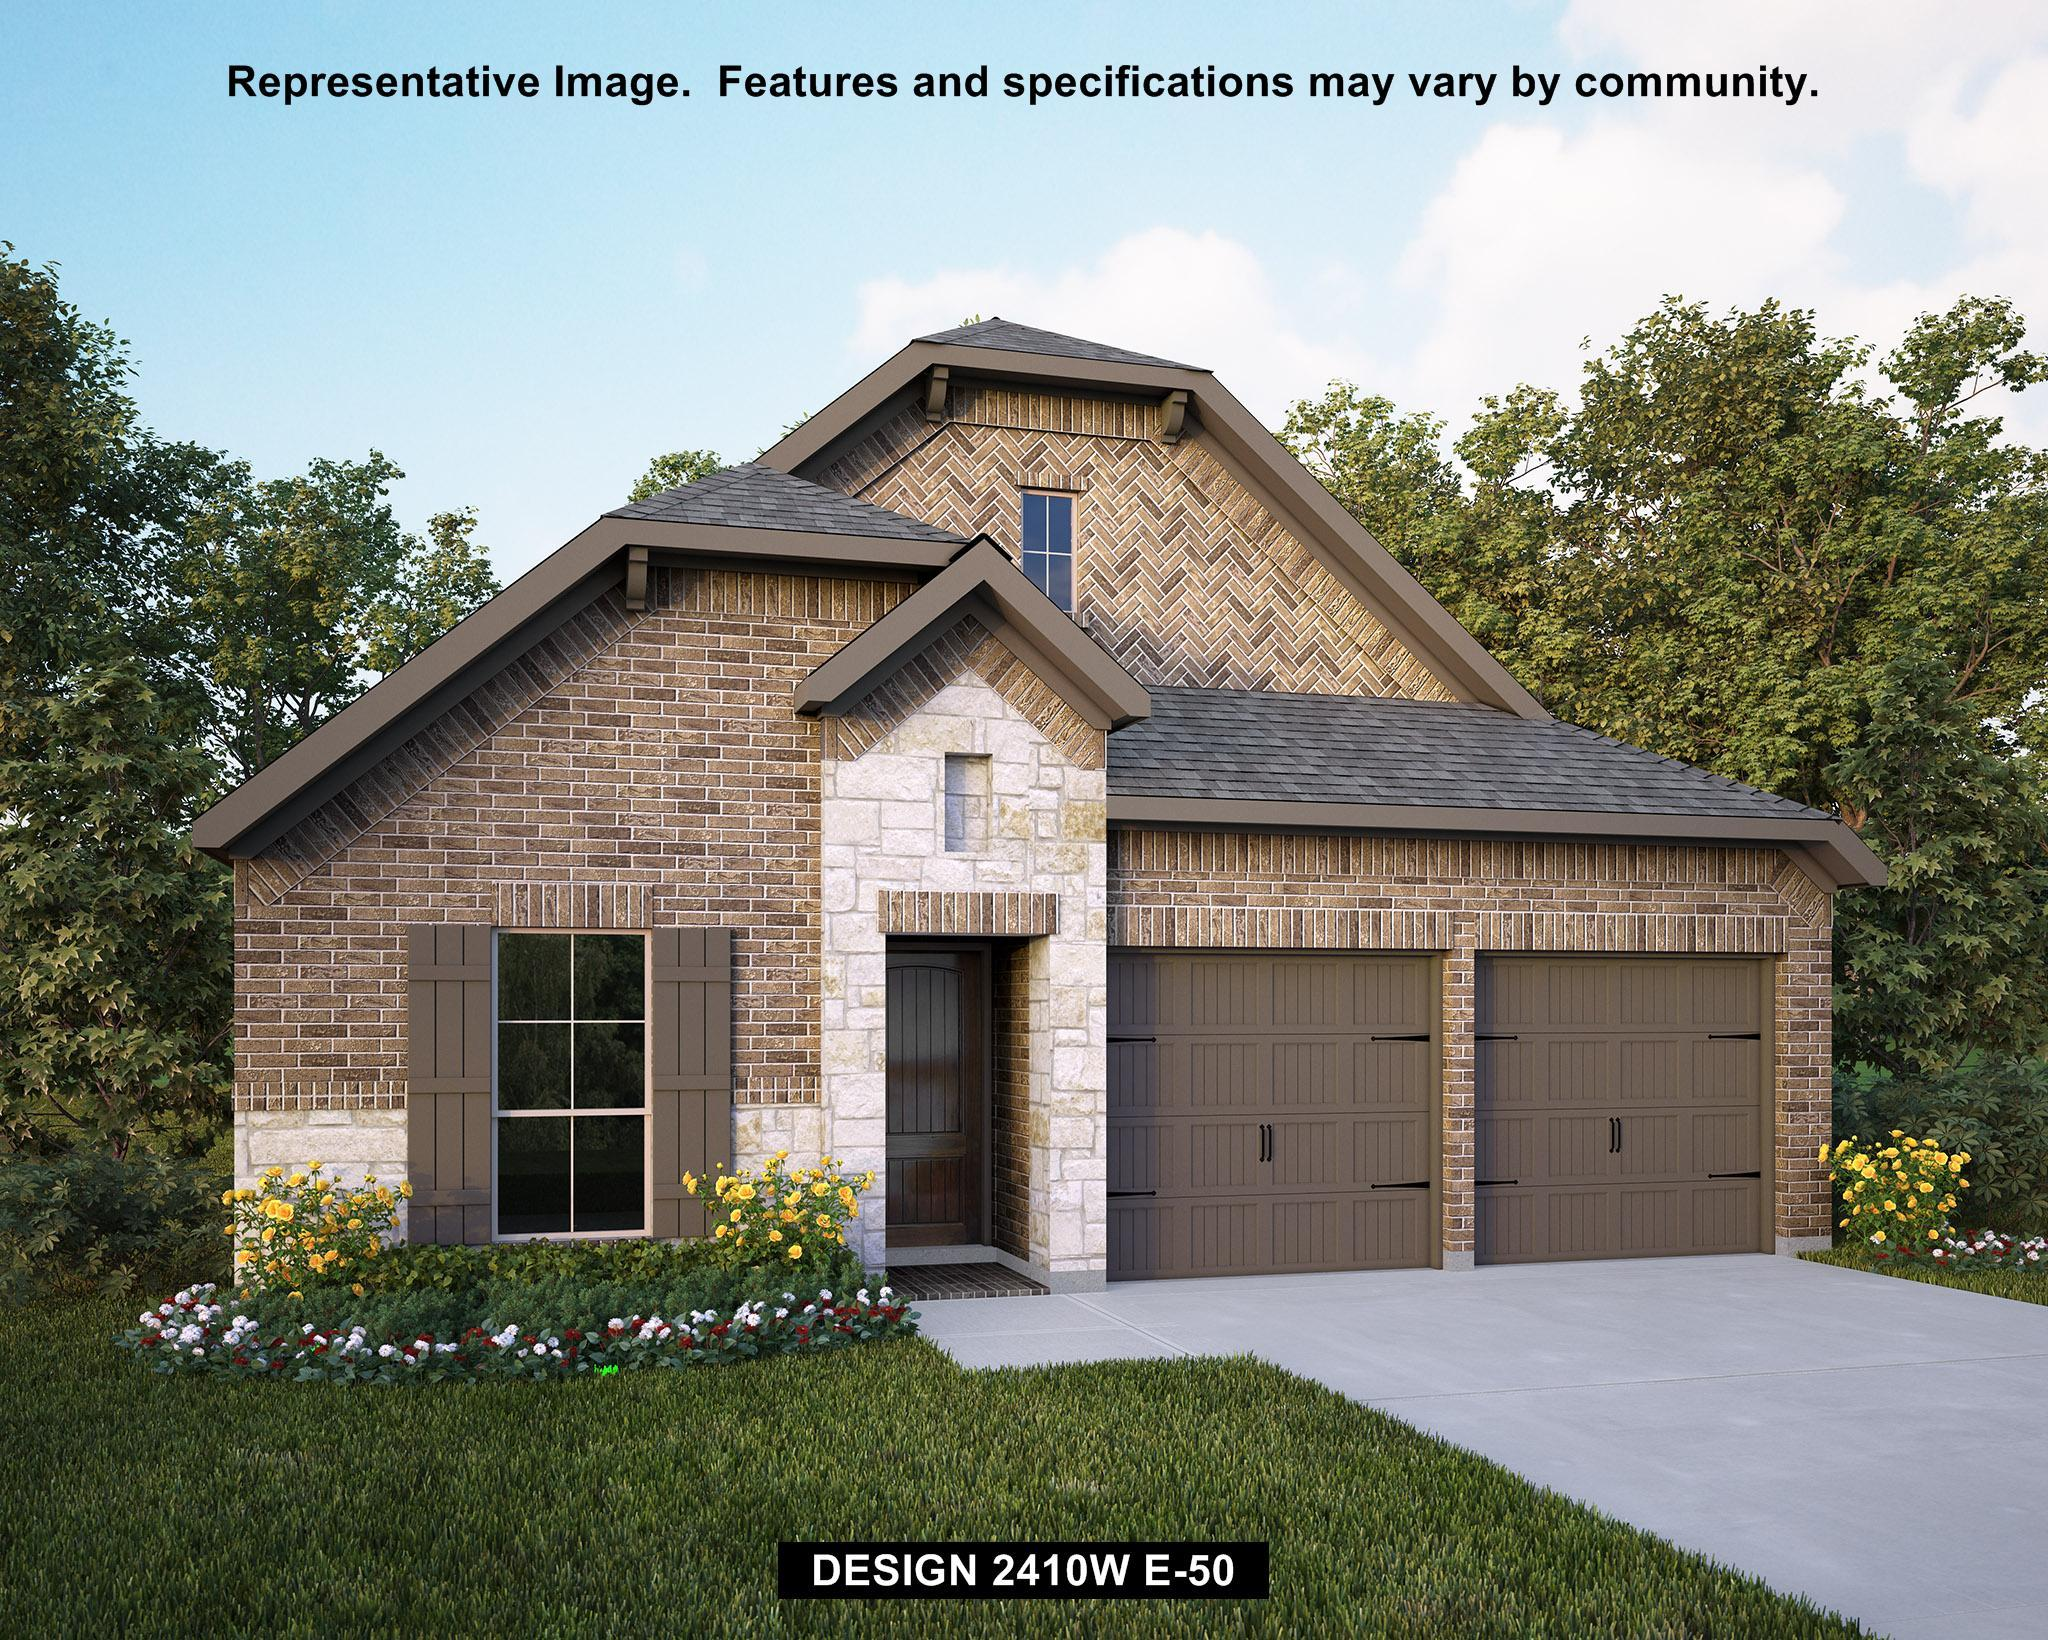 Single Family for Sale at Blanco Vista 45' - 2410w 113 Lacey Oak Loop San Marcos, Texas 78666 United States